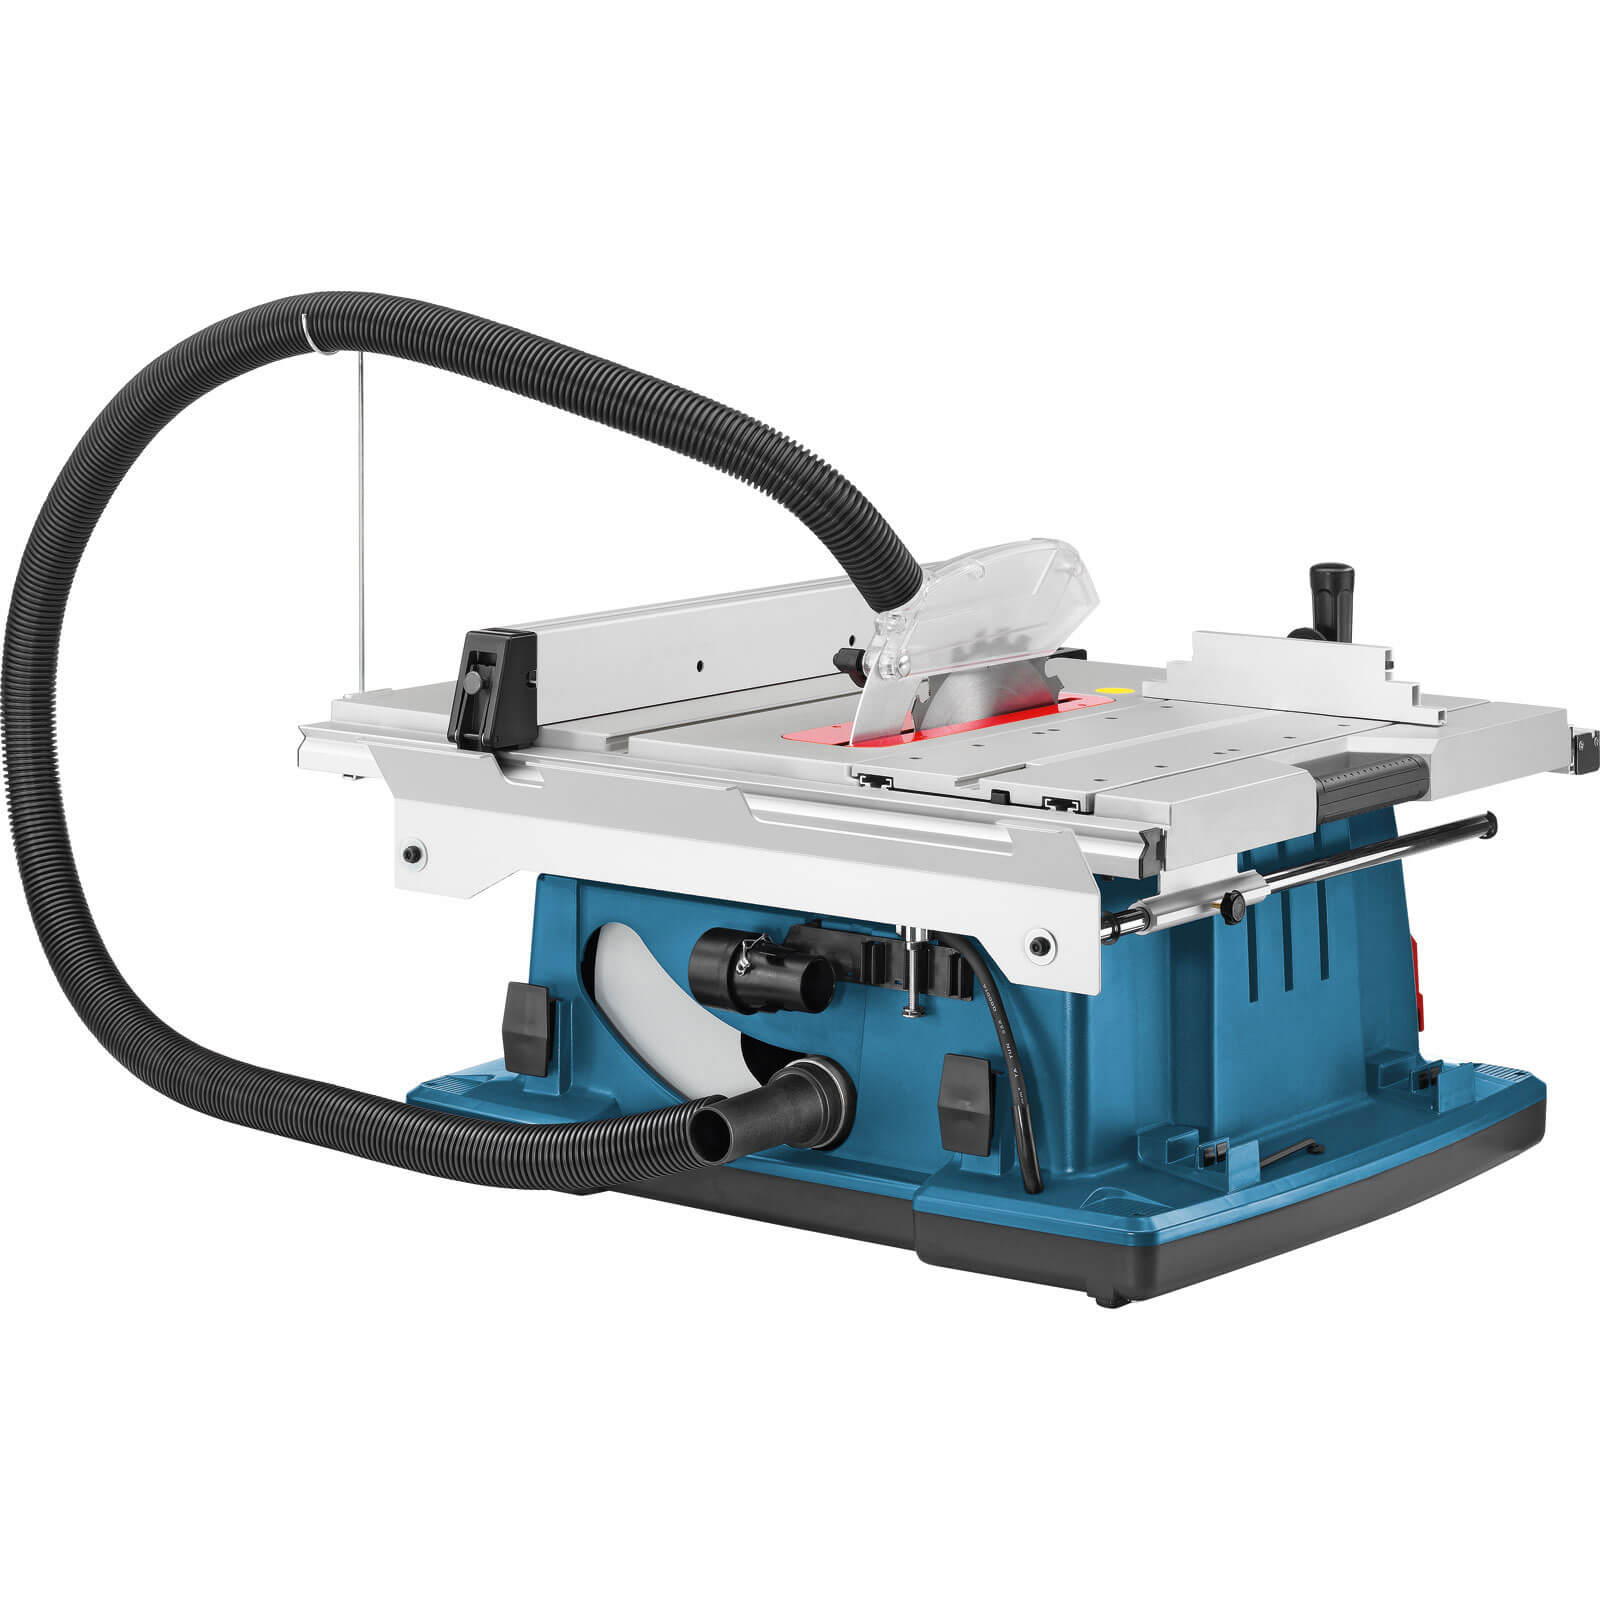 bosch gts 10 xc expanding table saw 10 254mm blade 2100w 240v tooled. Black Bedroom Furniture Sets. Home Design Ideas